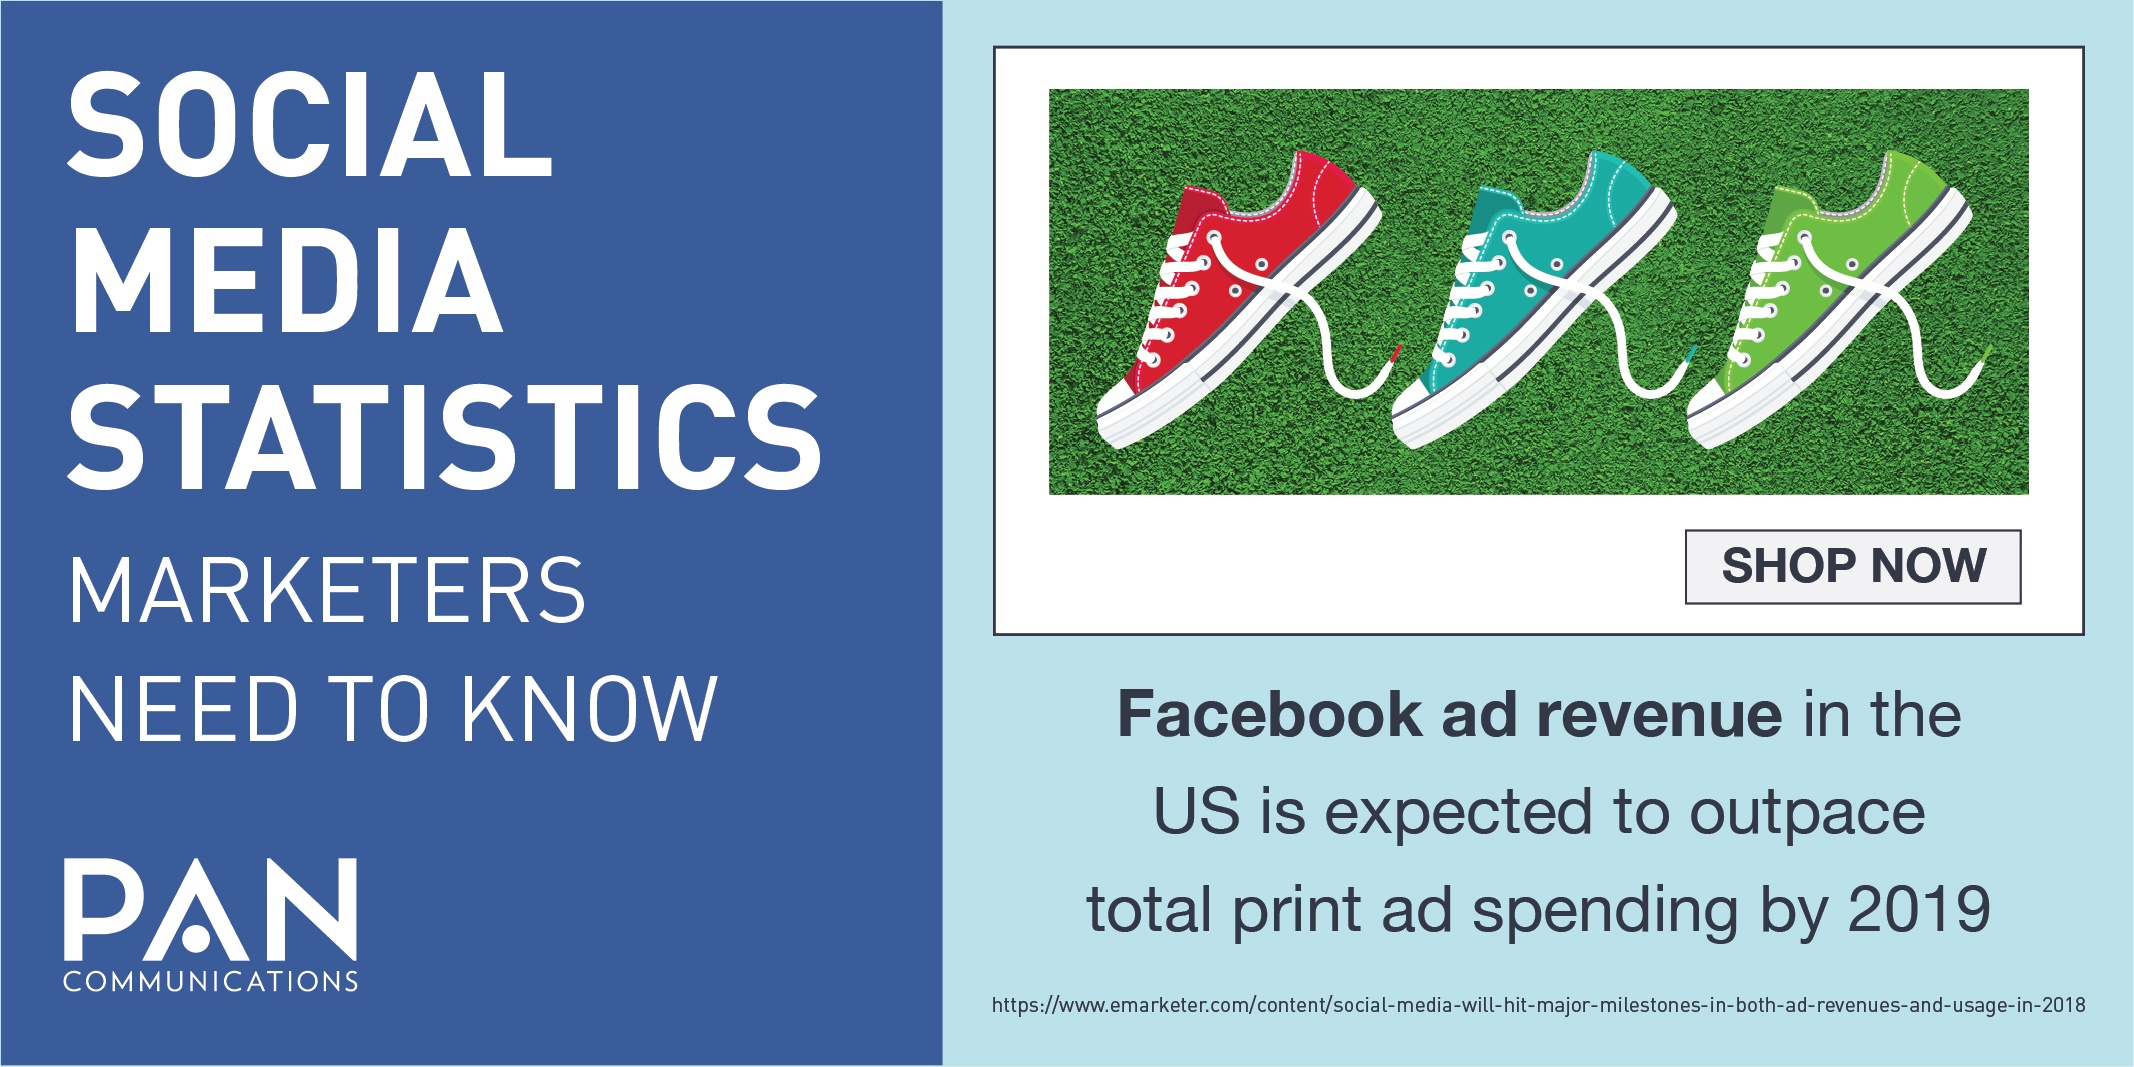 Social Media Statistics Marketers Need to Know [Infographic]